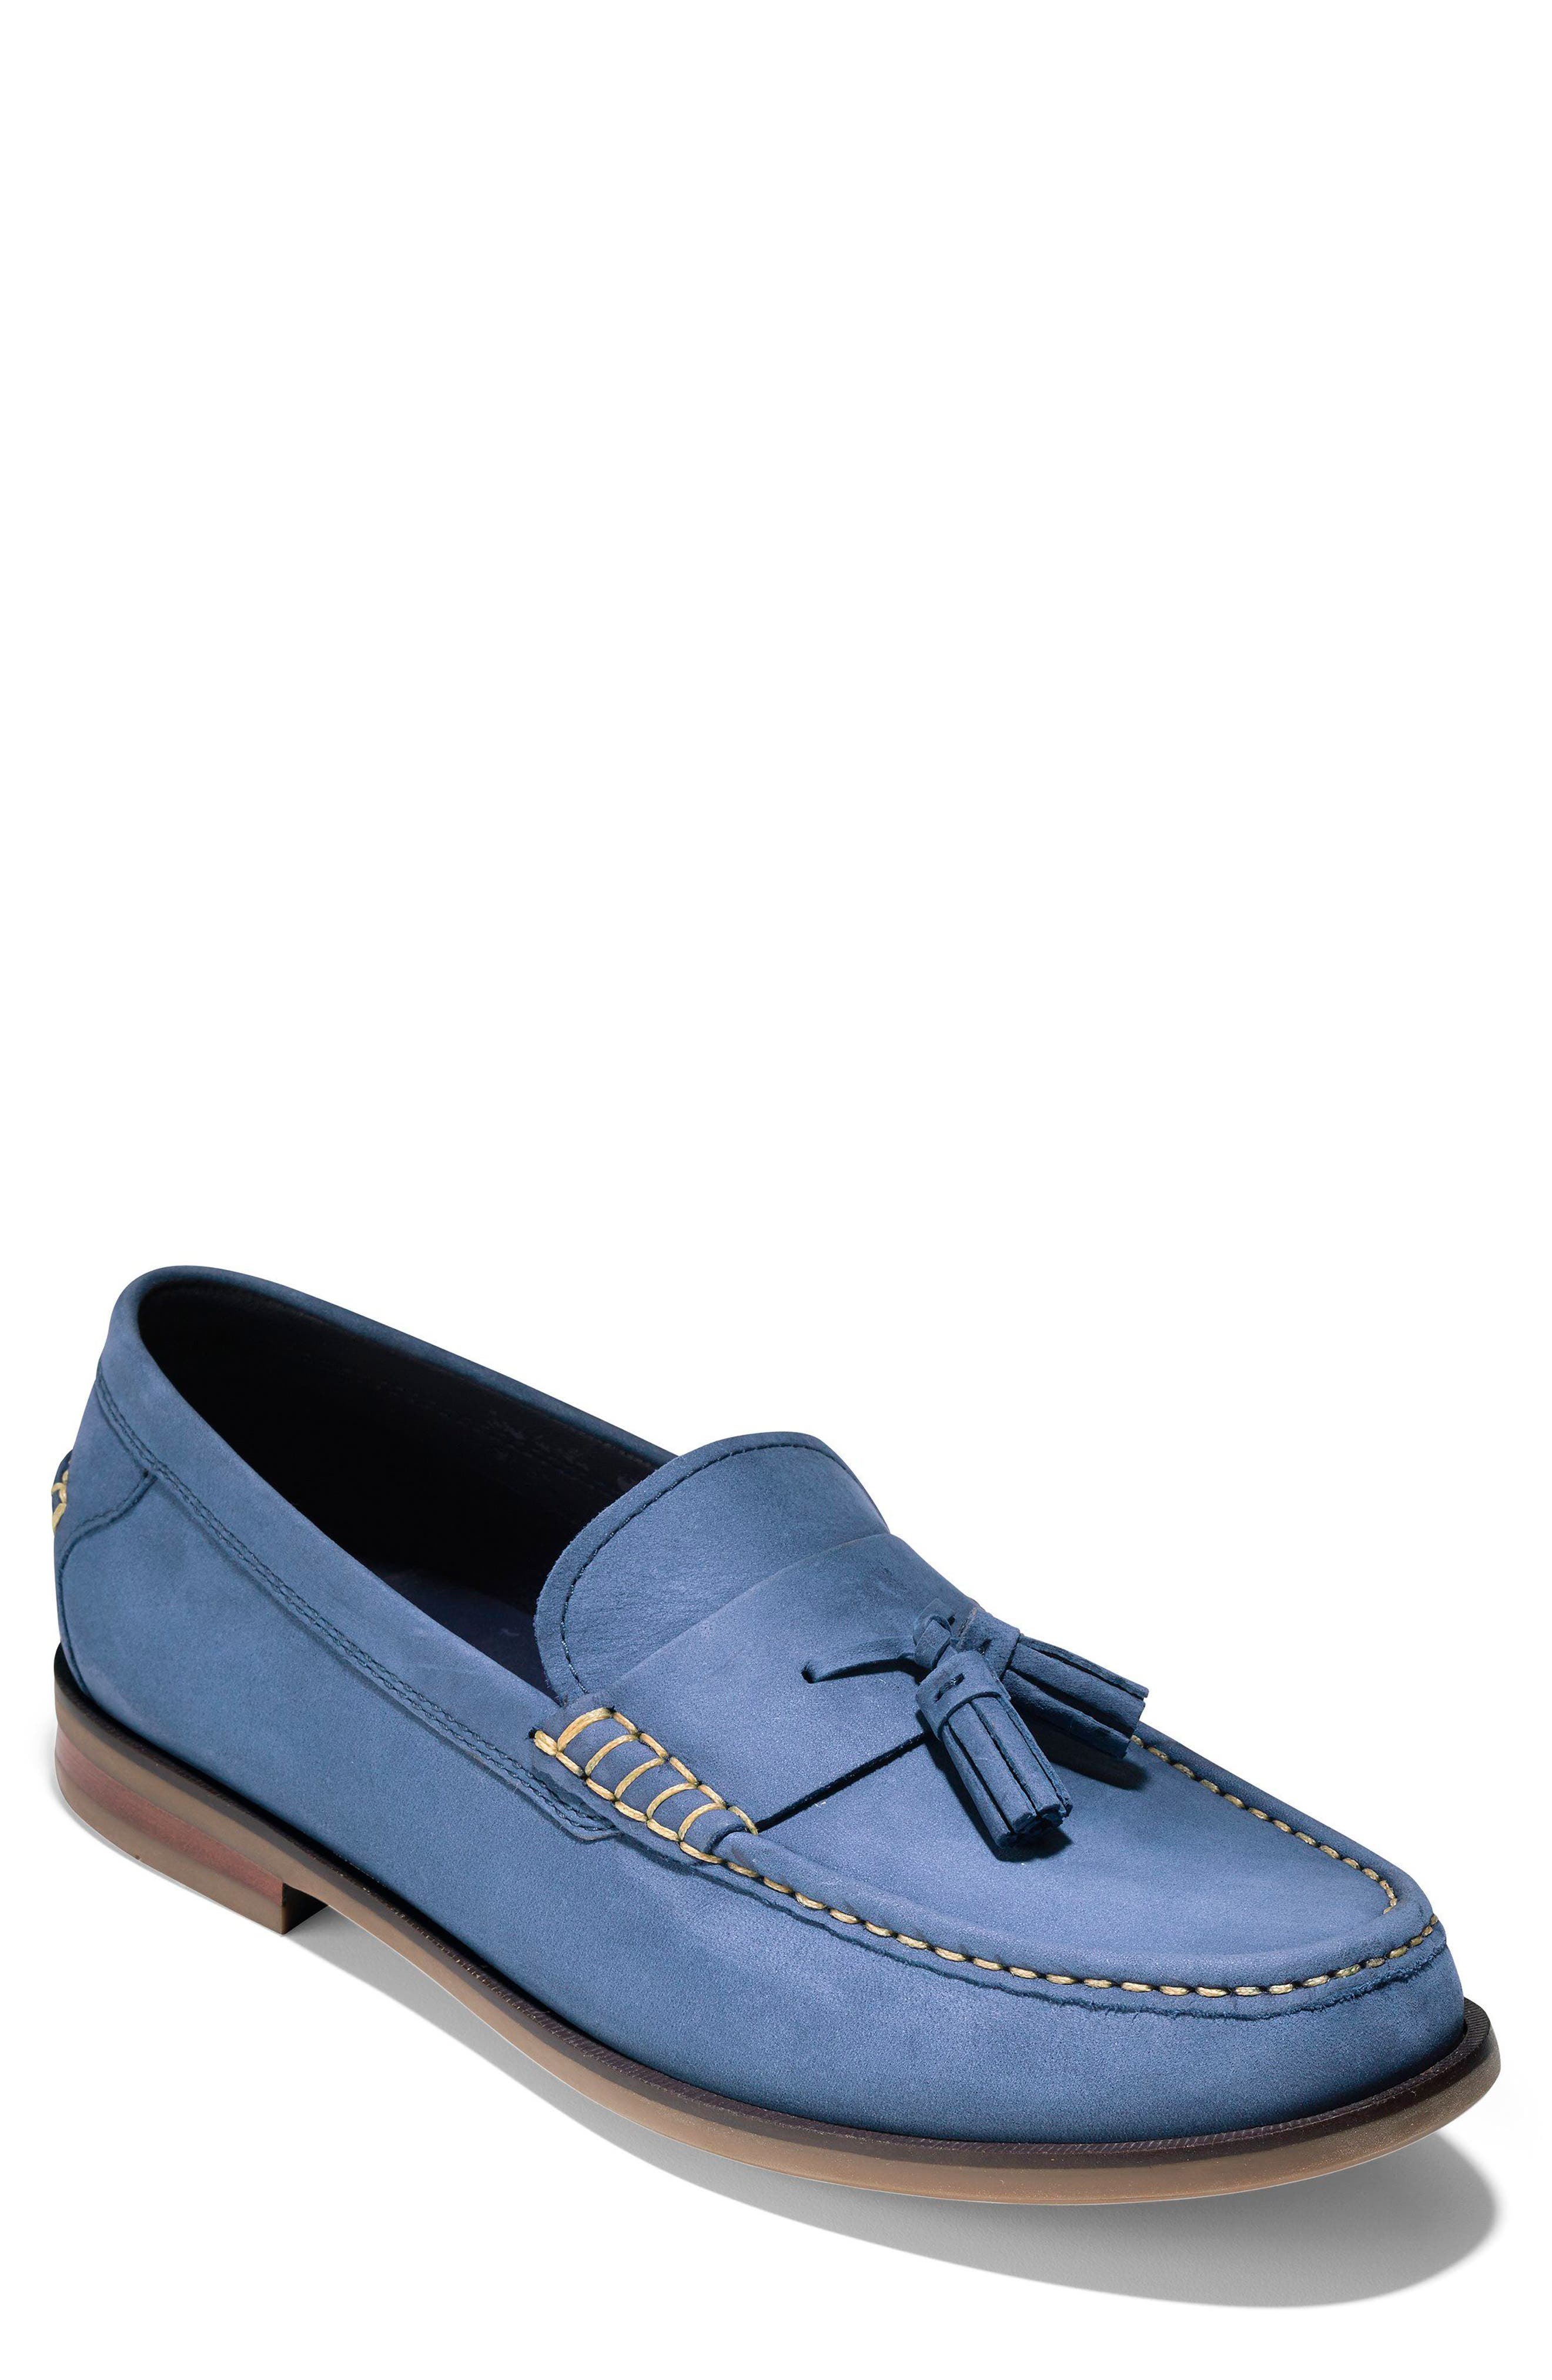 Pinch Friday Tassel Loafer,                         Main,                         color, 400